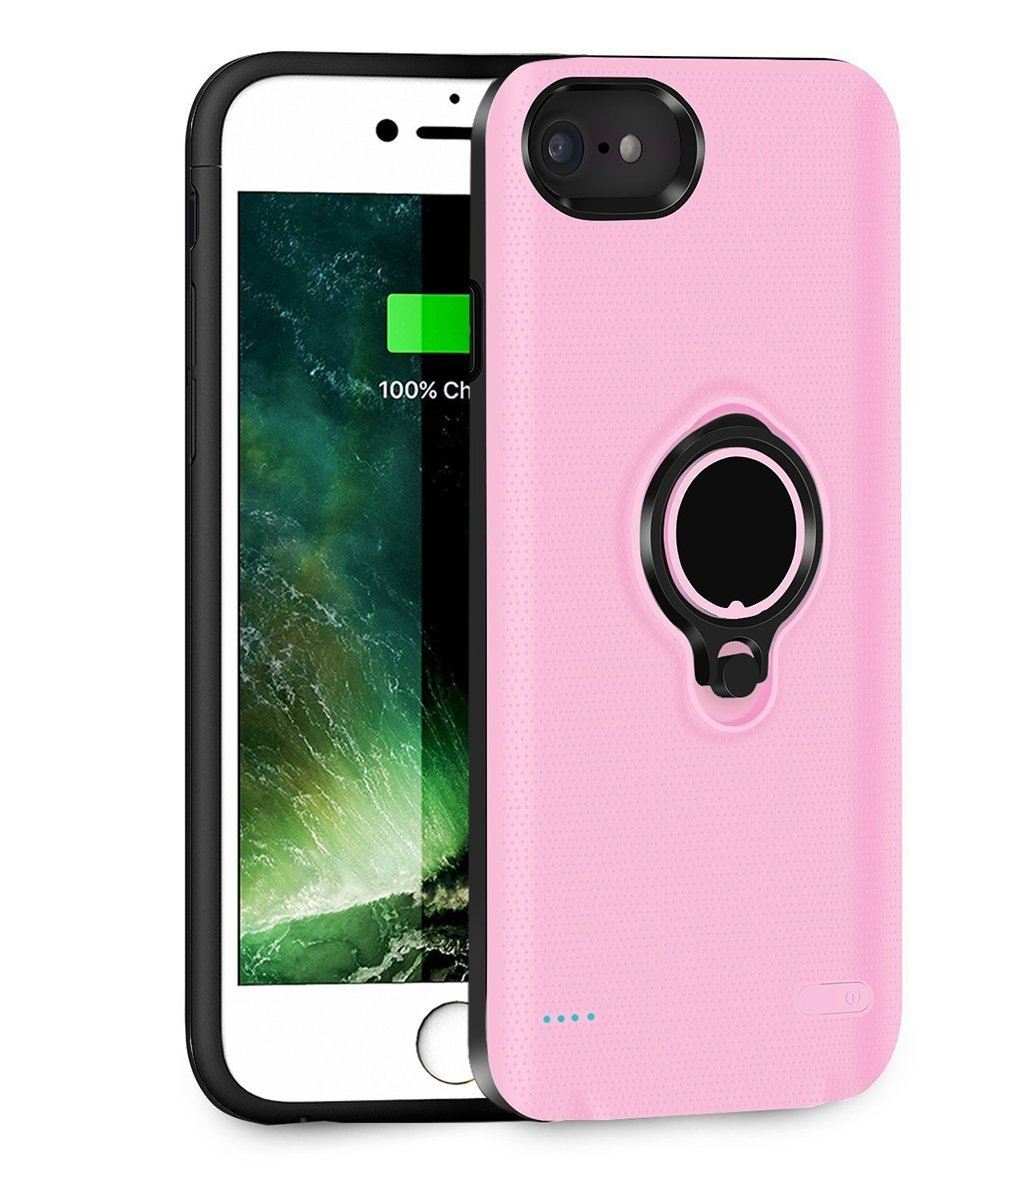 iphone 6 Plus 6s Plus Battery Case, Aiwako 7200mAh Portable Charging Case for iPhone 6 Plus&6s Plus&7 Plus&8 Plus(5.5 inch) with Ring Holder Kickstand Function Ultra Extended Battery Case Lightning Cable Input Mode - (Pink) aicase-7200-Pink